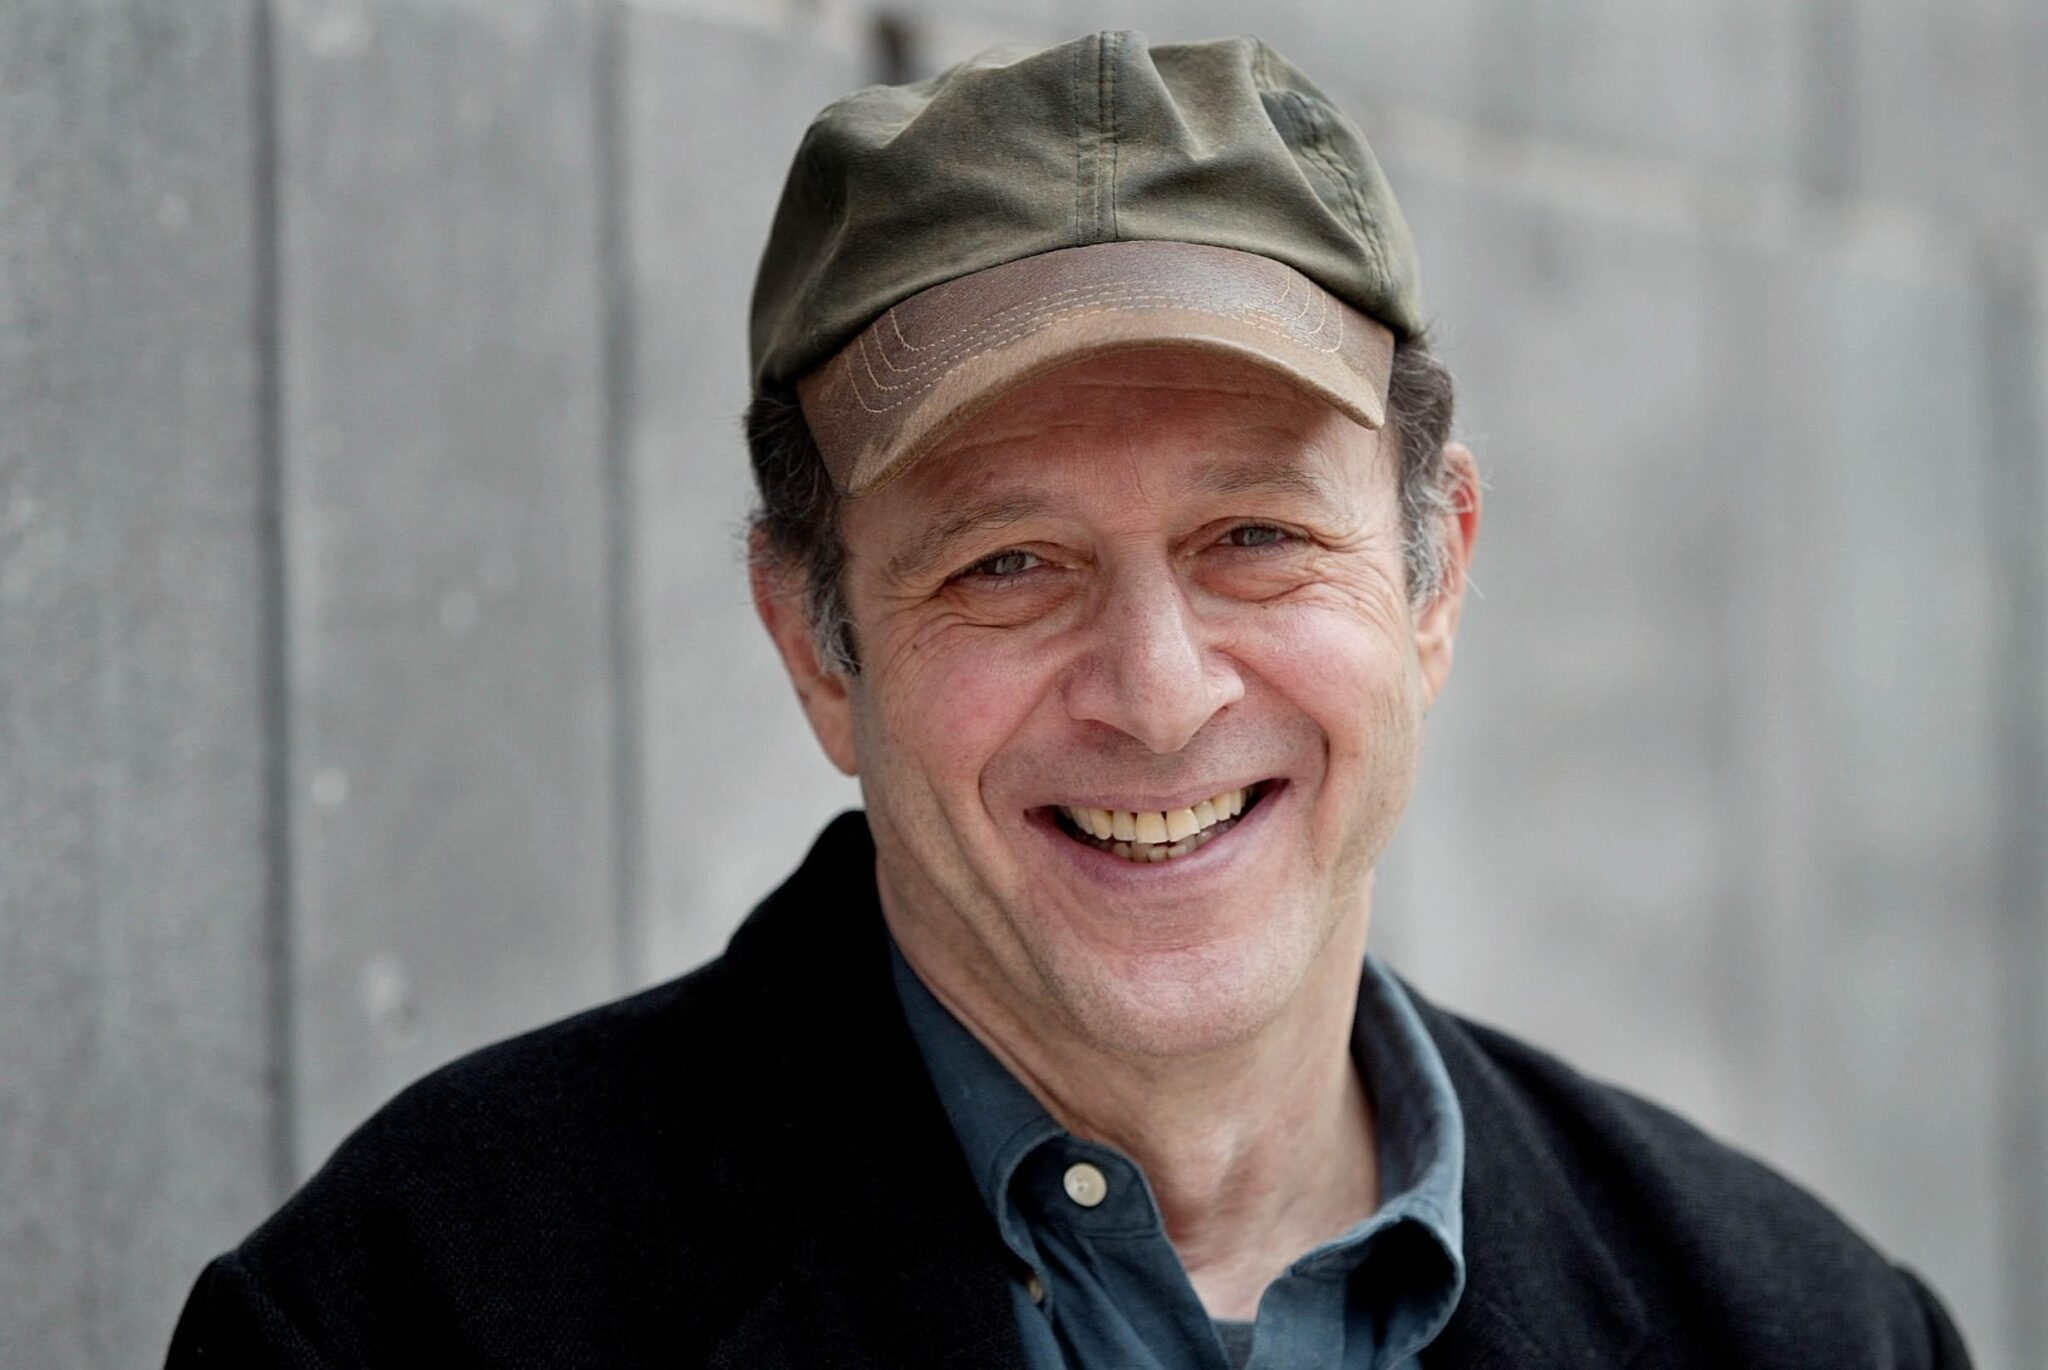 steve_reich_photo_credit_wonge_bergmann